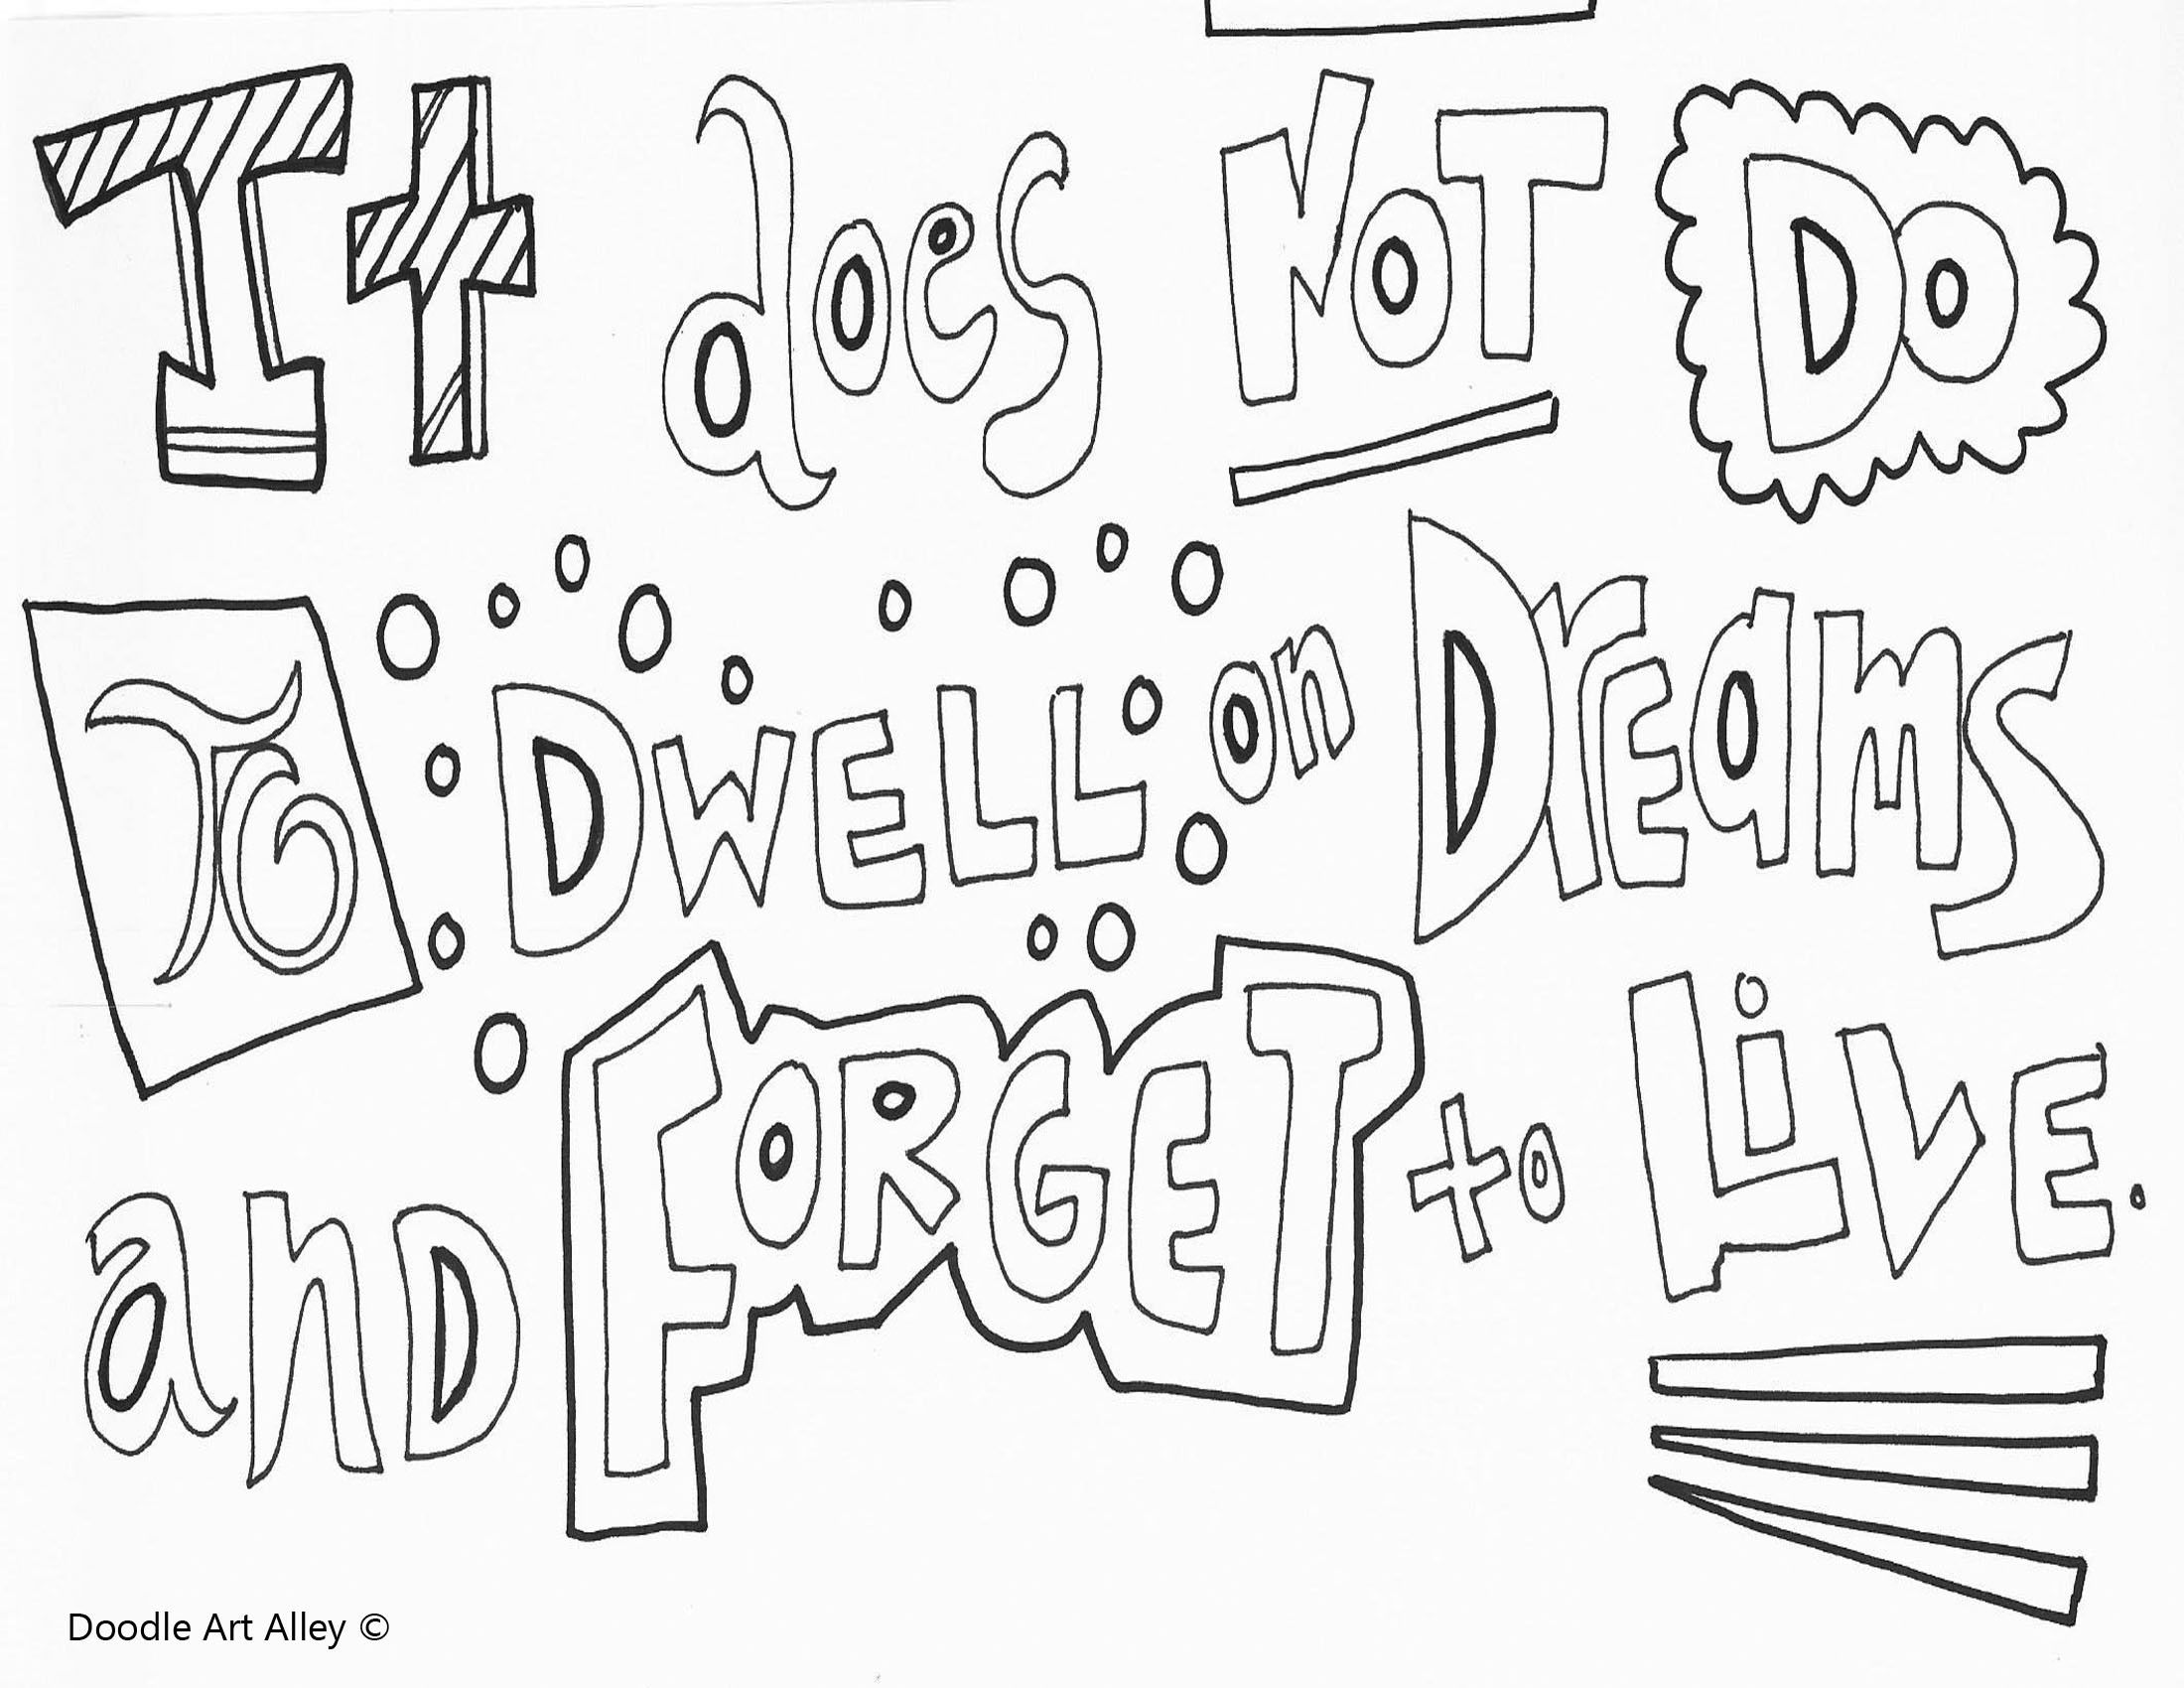 Itdoesnotdo Jpg Quote Coloring Pages Harry Potter Coloring Pages Coloring Pages